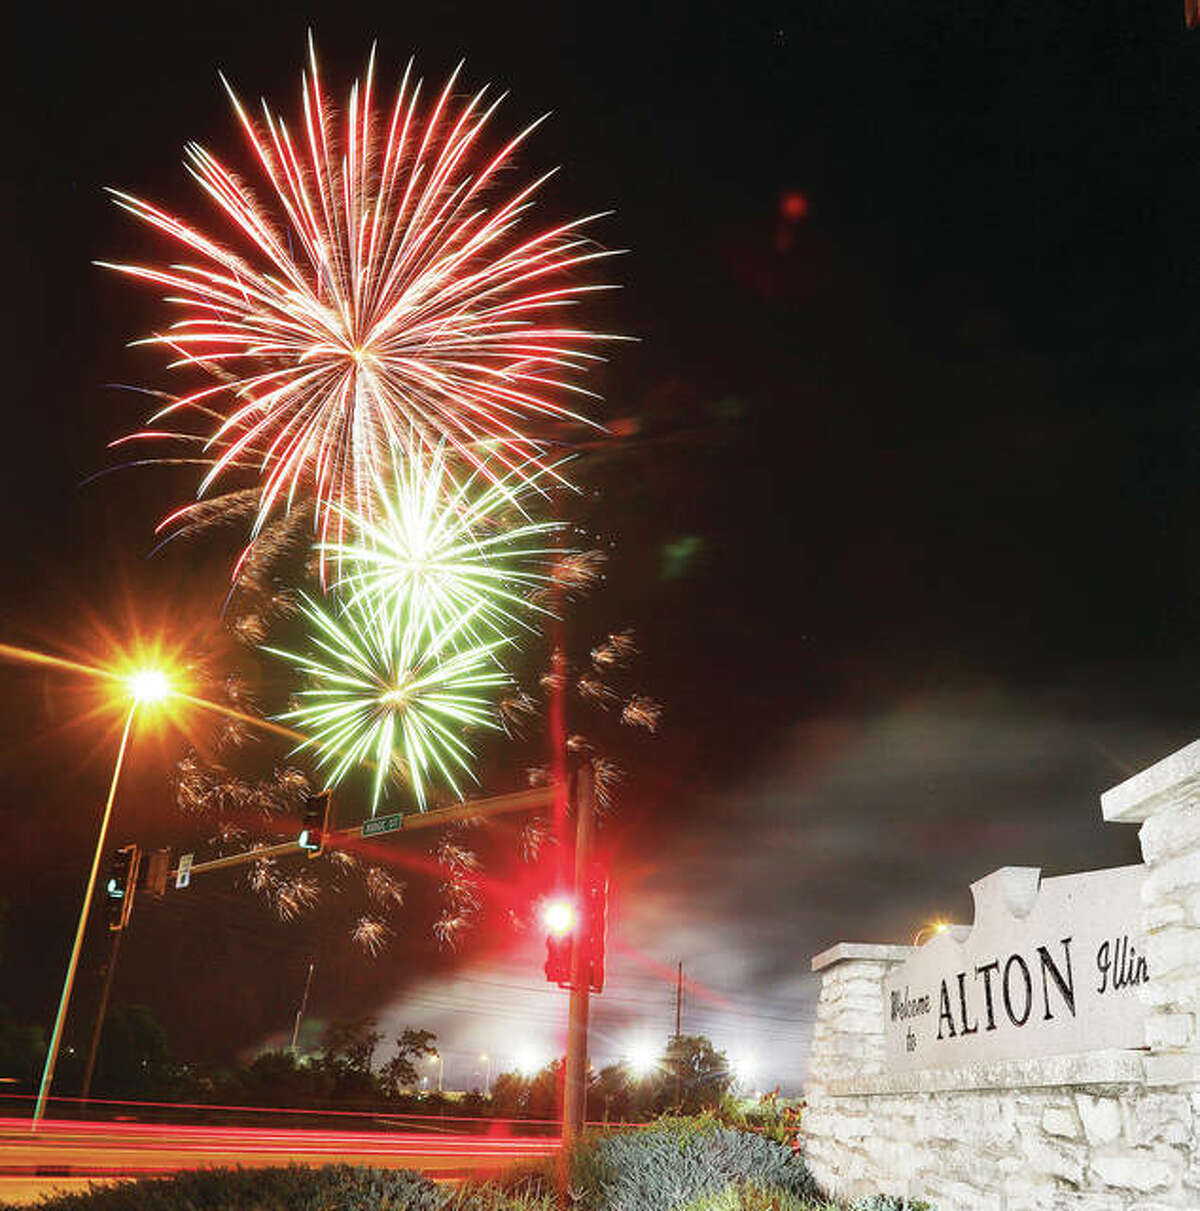 The Great Rivers & Routes Tourism Bureau of Southwest Illinois will hold its final Light Up the River Road fireworks event starting at 8:30 p.m. Thursday with simultaneous shows in Alton and Grafton.